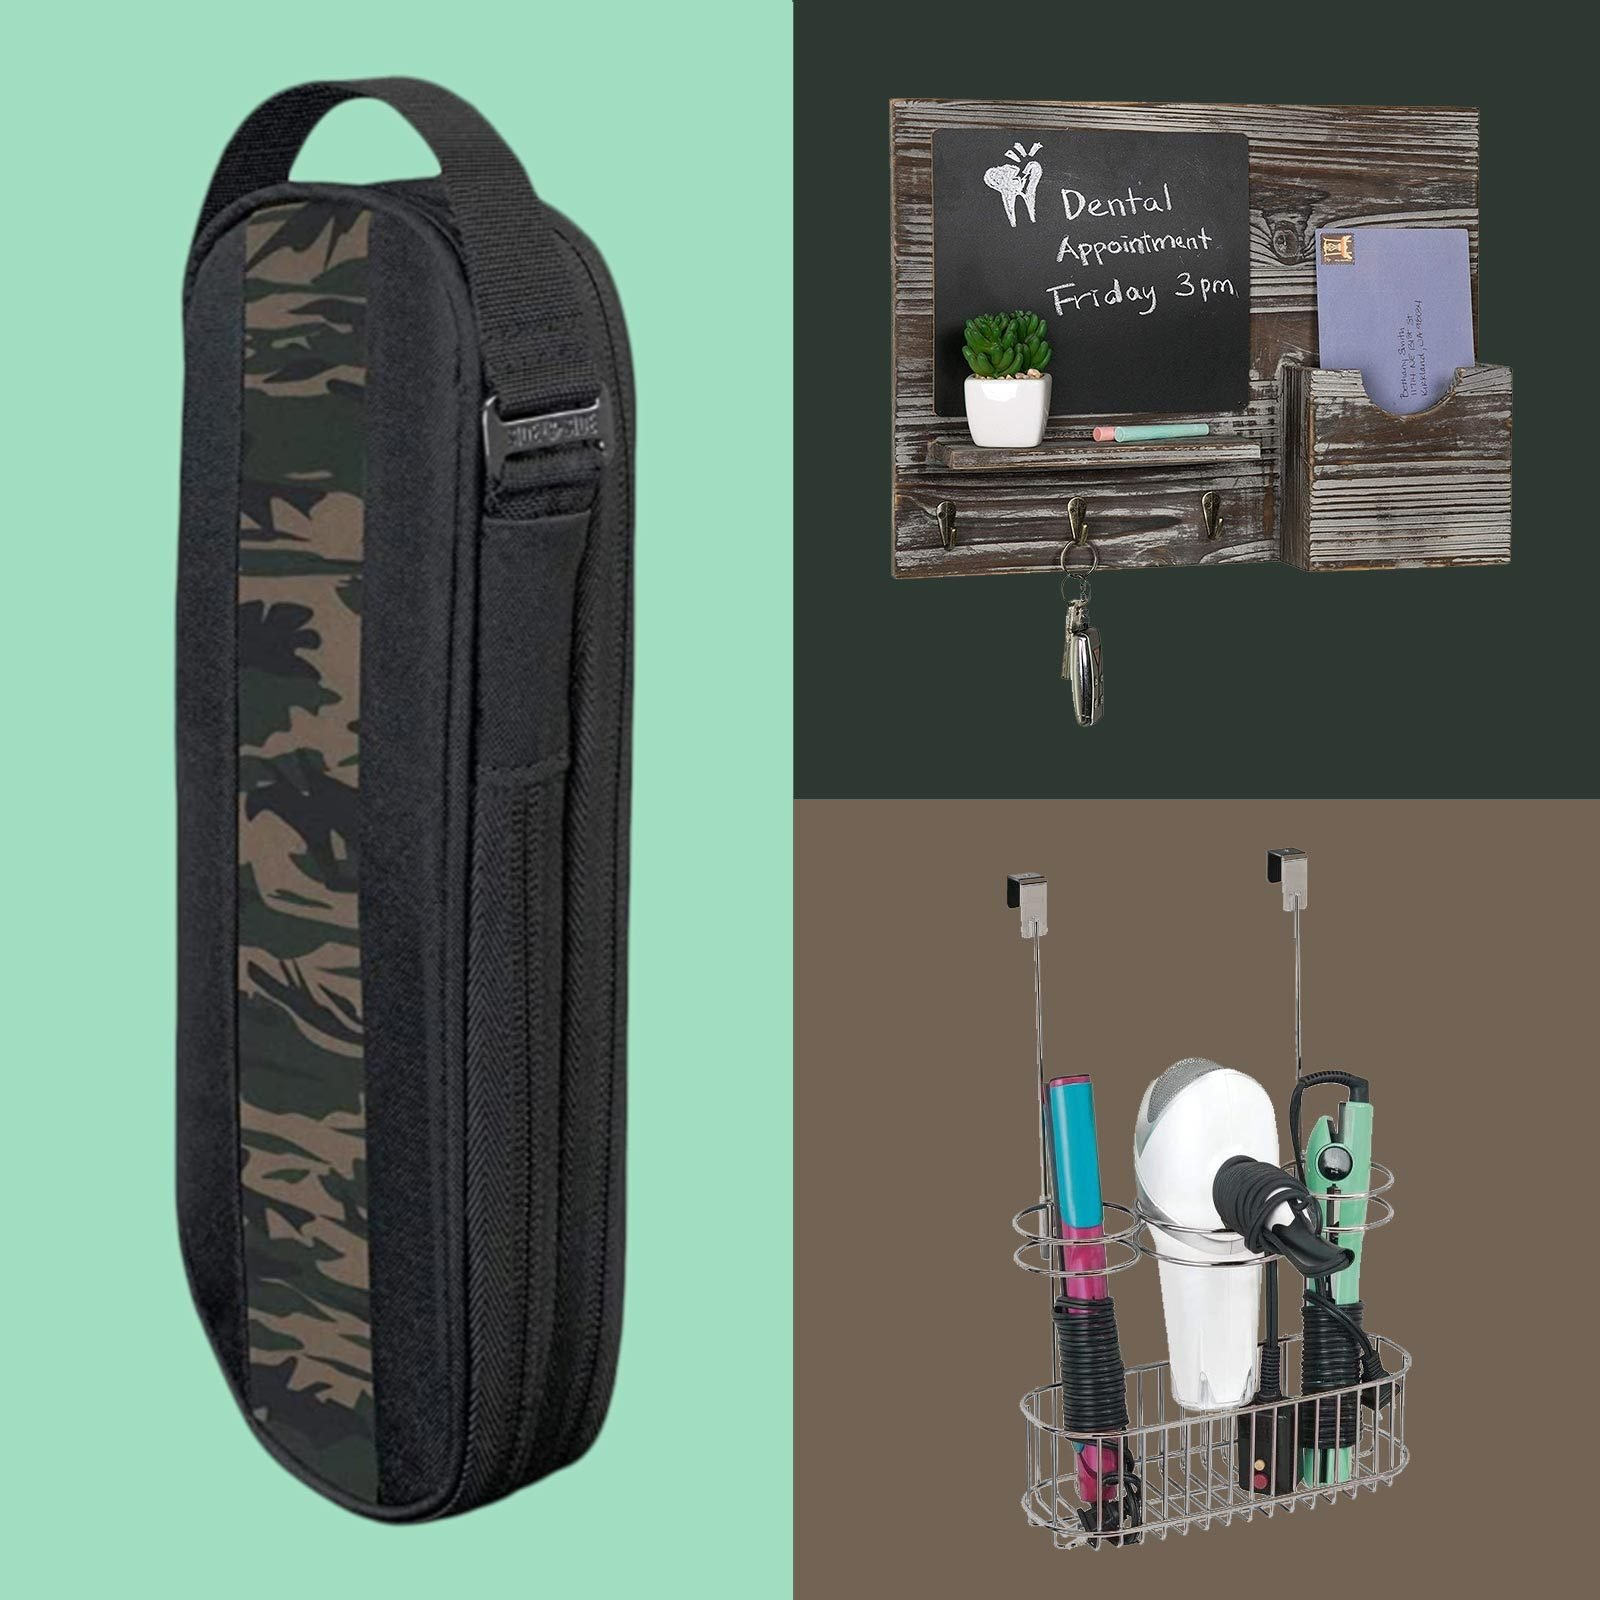 Three amazon products: a tech pouch for holding chargers, a chalkboard for a house entryway, and a rack for holding hair supplies